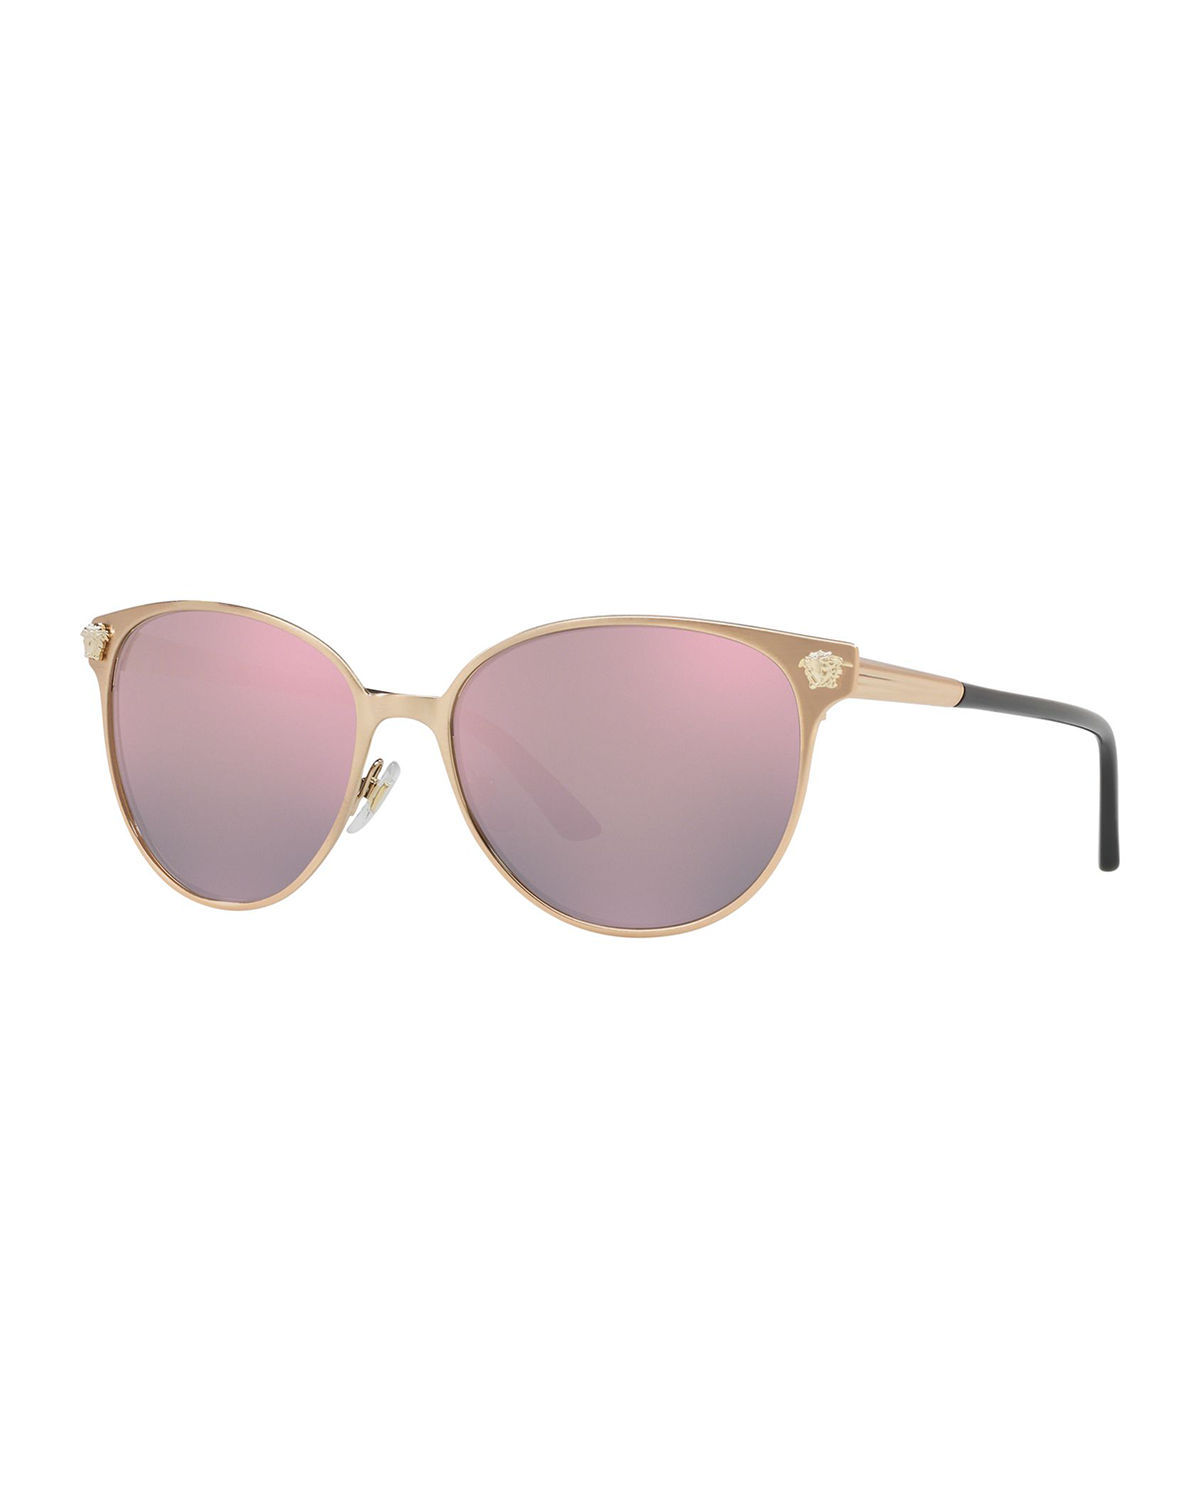 c70a500f47 Versace Polarized Round Sunglasses W  Medusa Head Temples In Pink ...